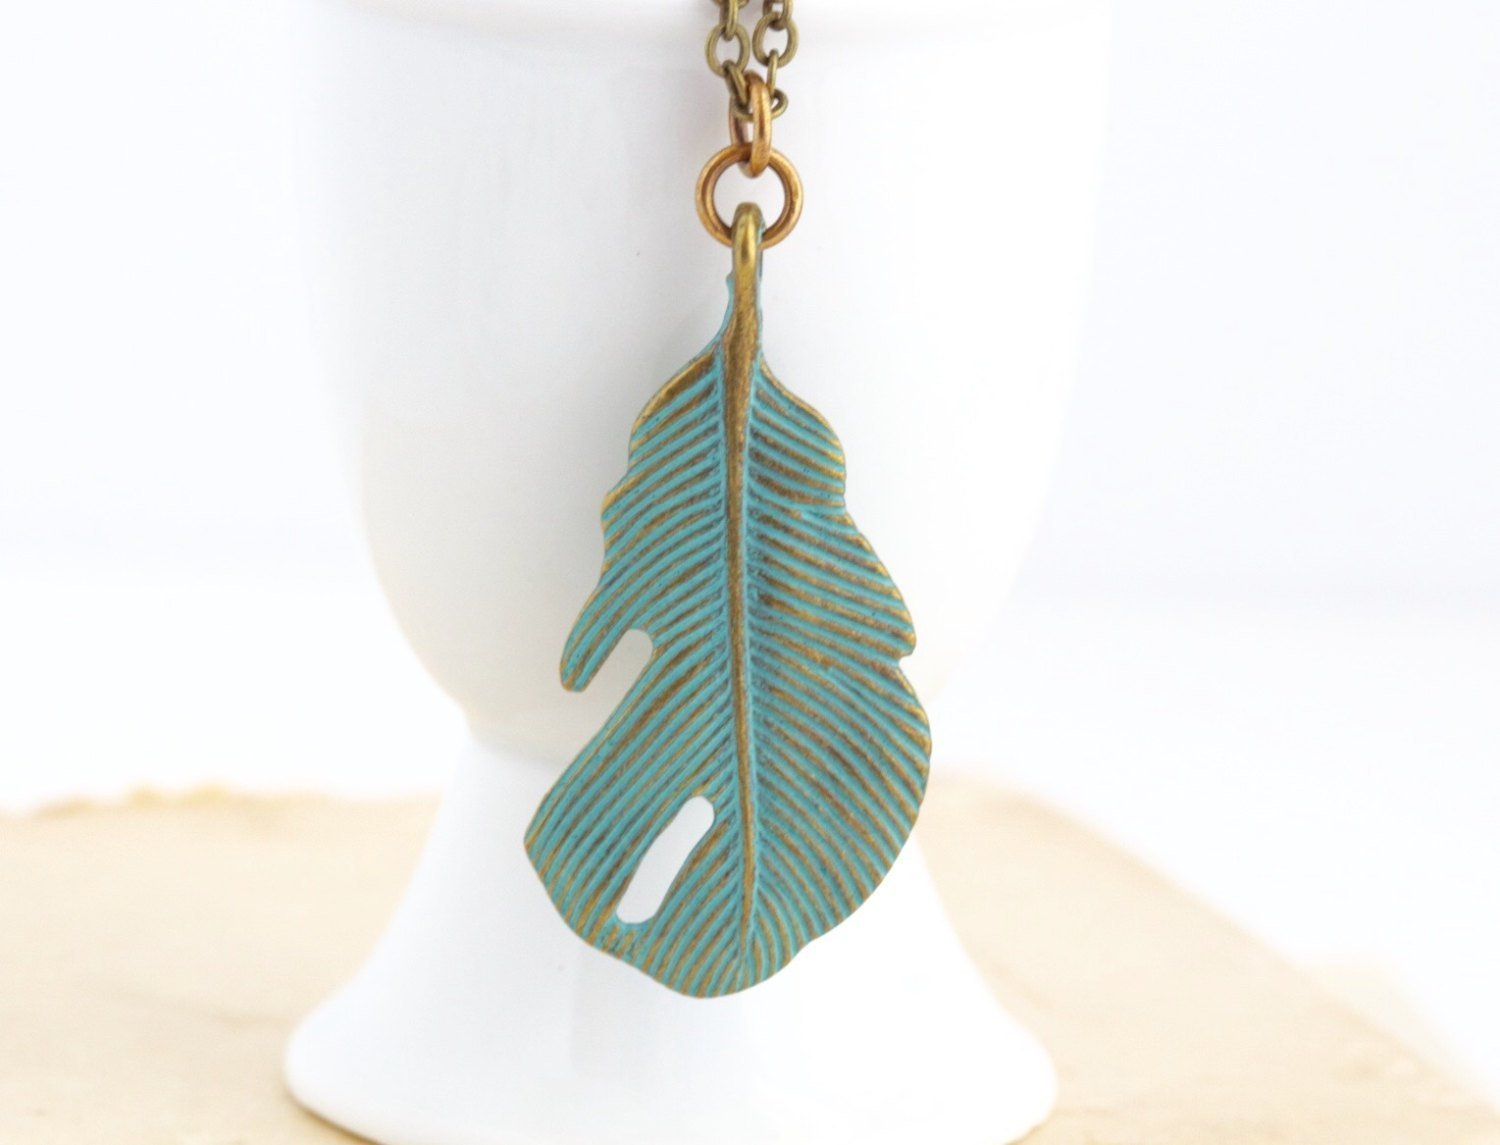 Green Feather Pendant Necklace - 26 Inch Chain